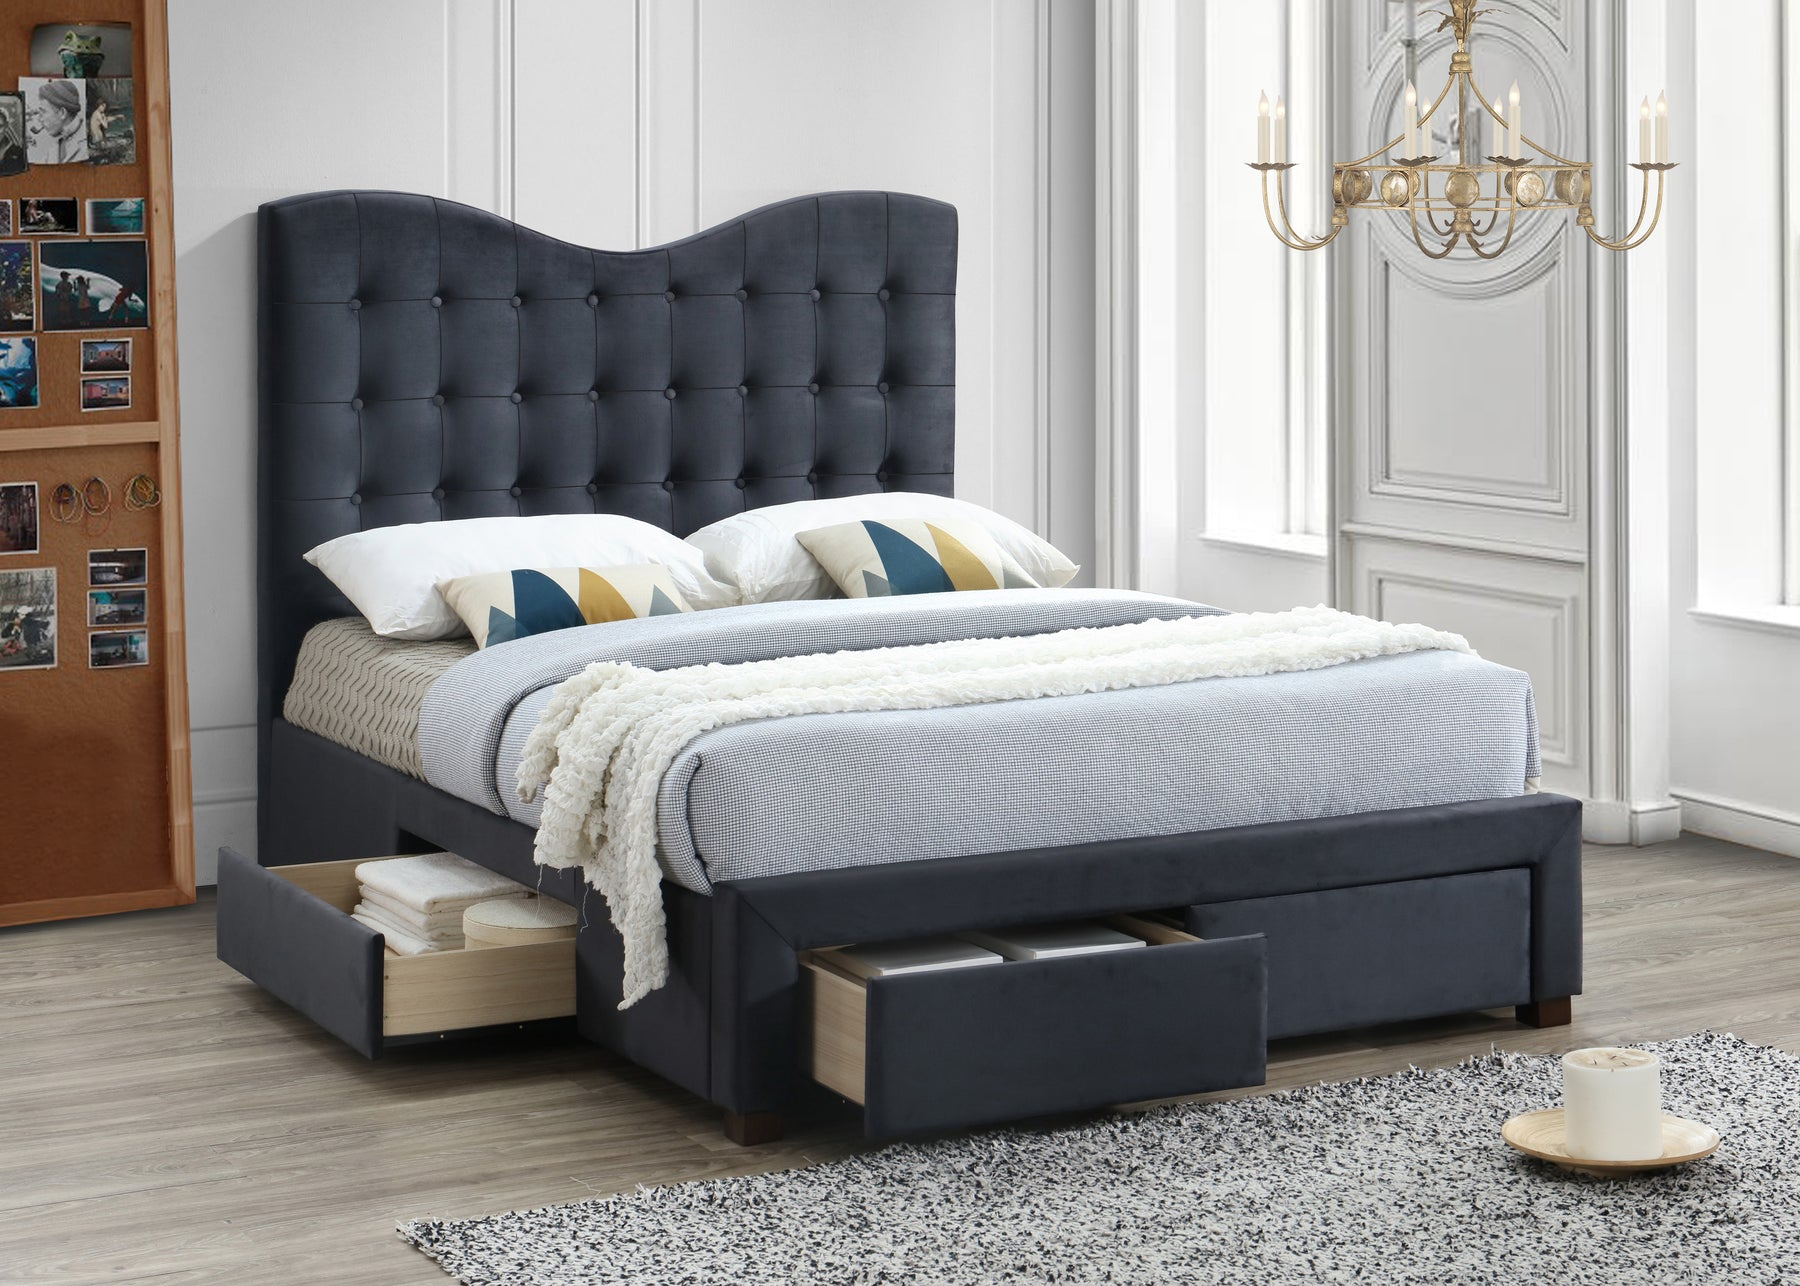 Manhatten Fabric 4 Drawer Bed